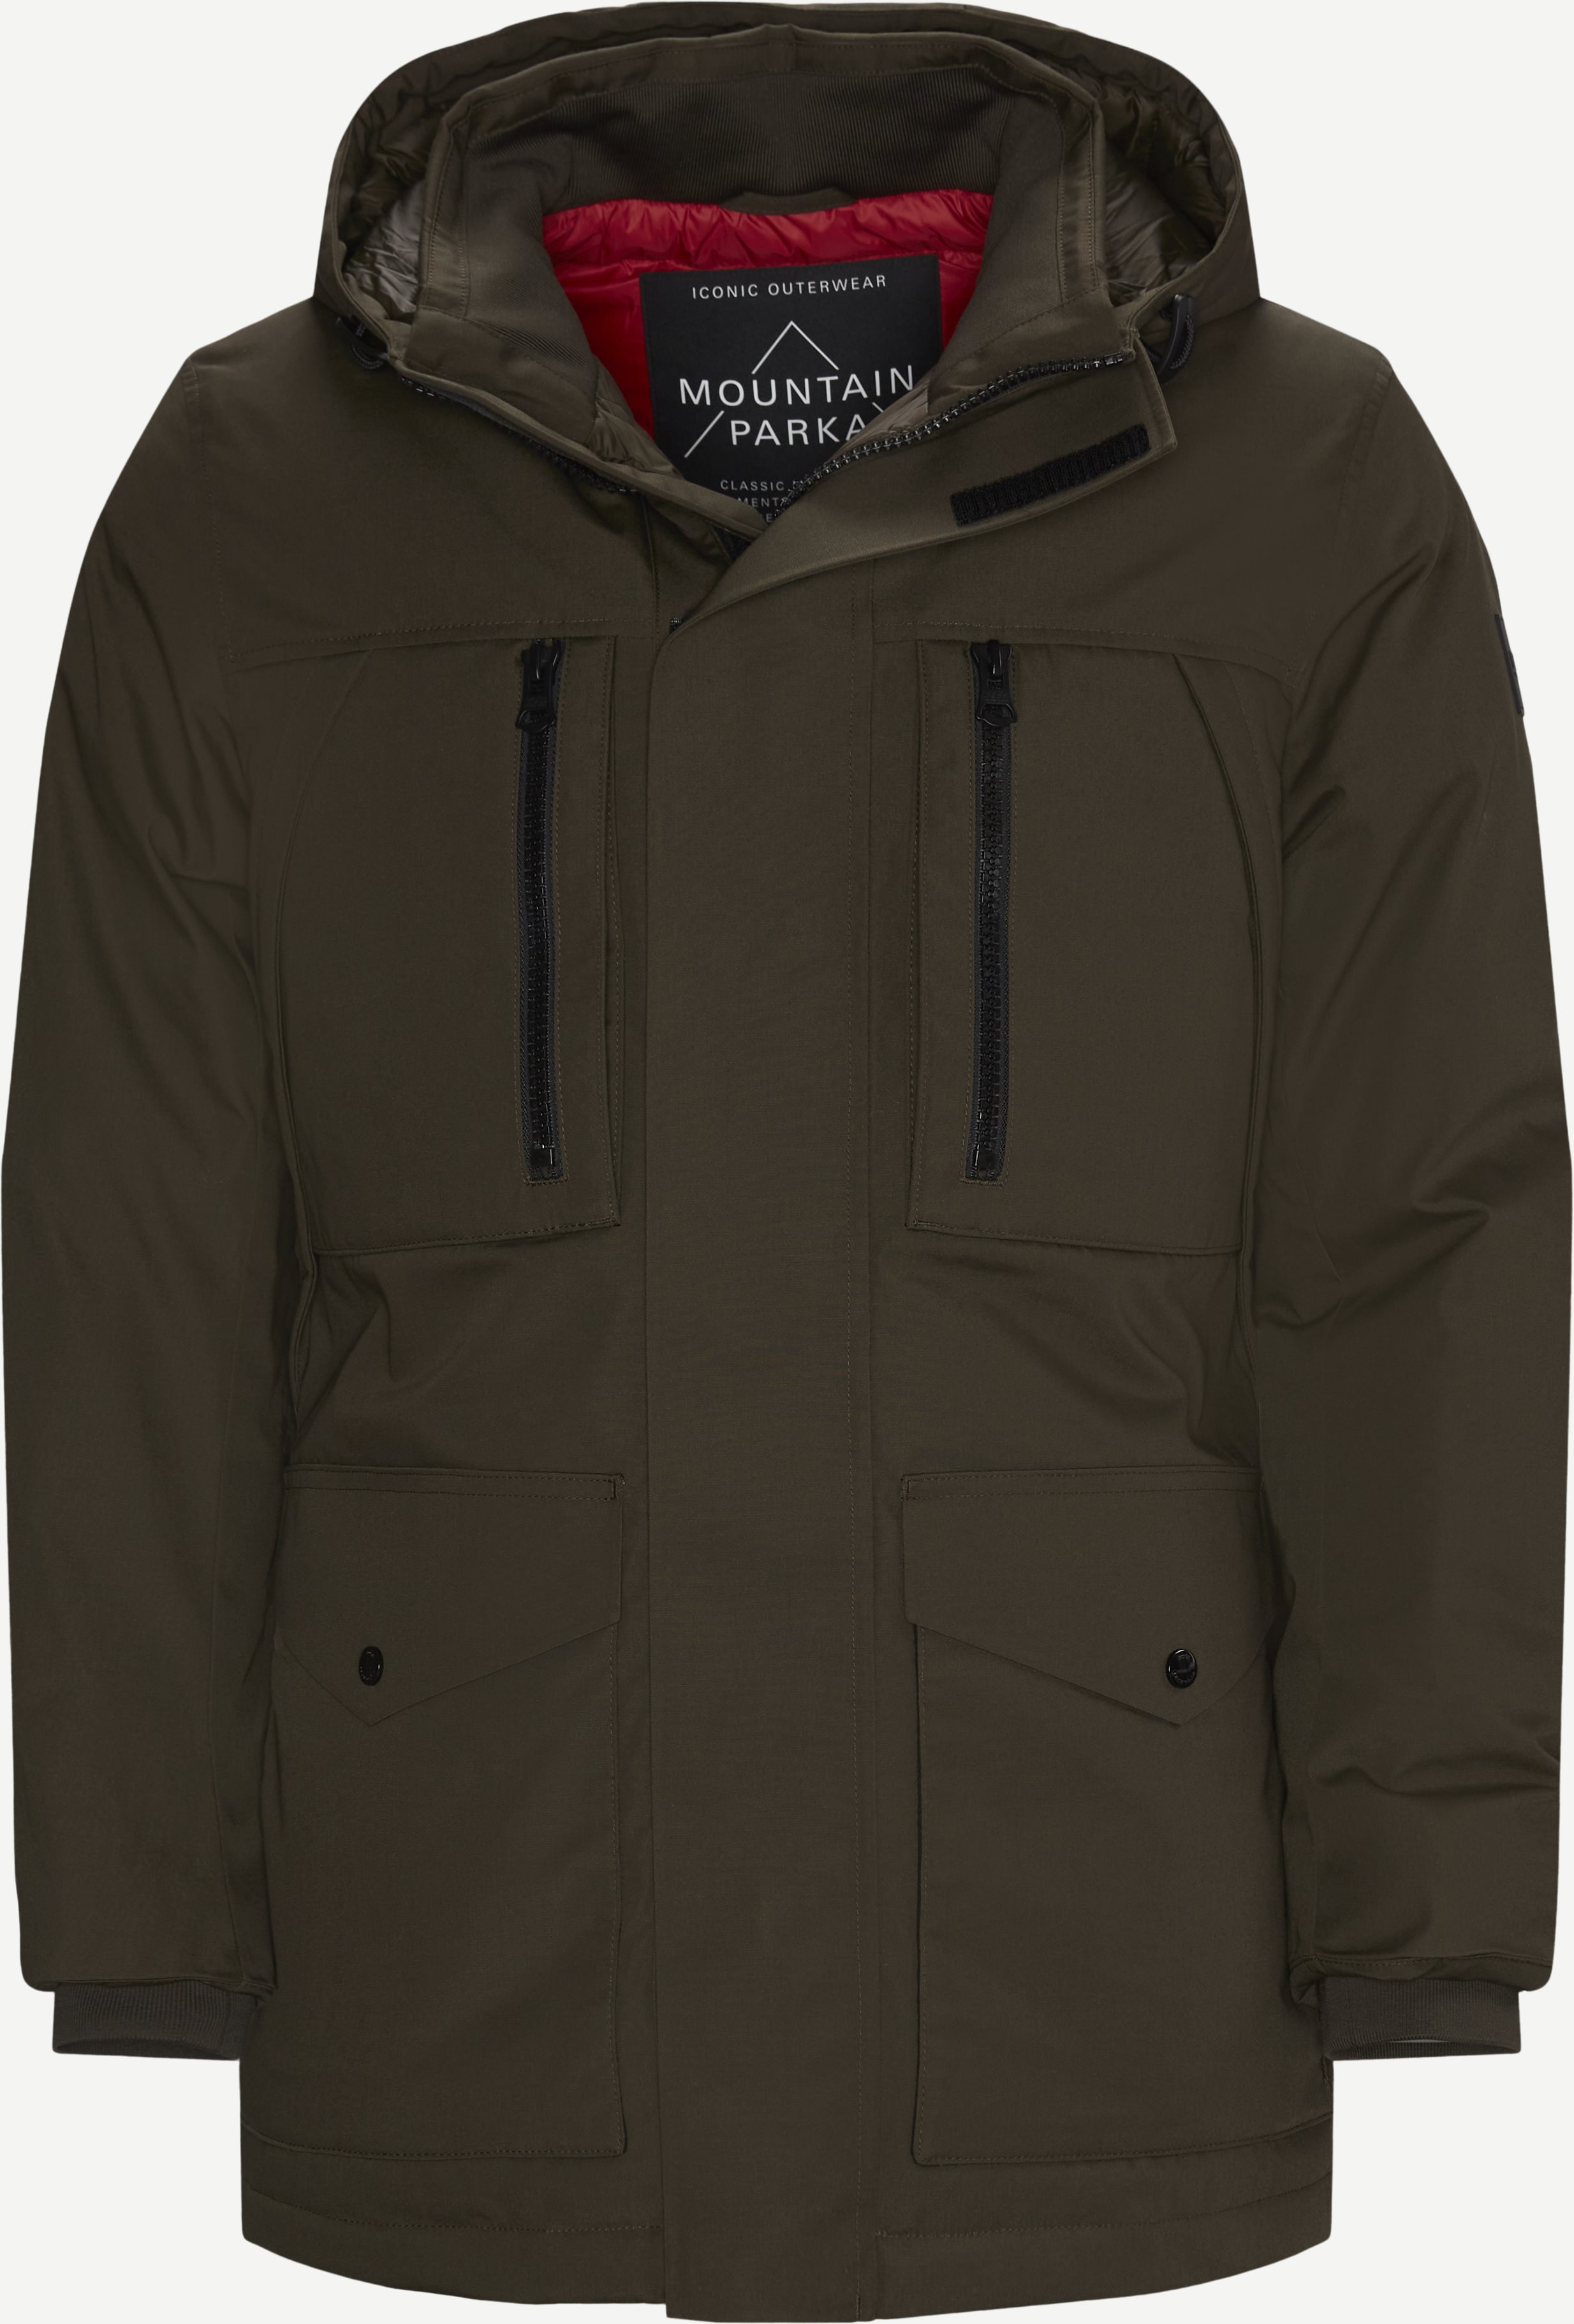 Donatis Jacket - Jackets - Regular - Army